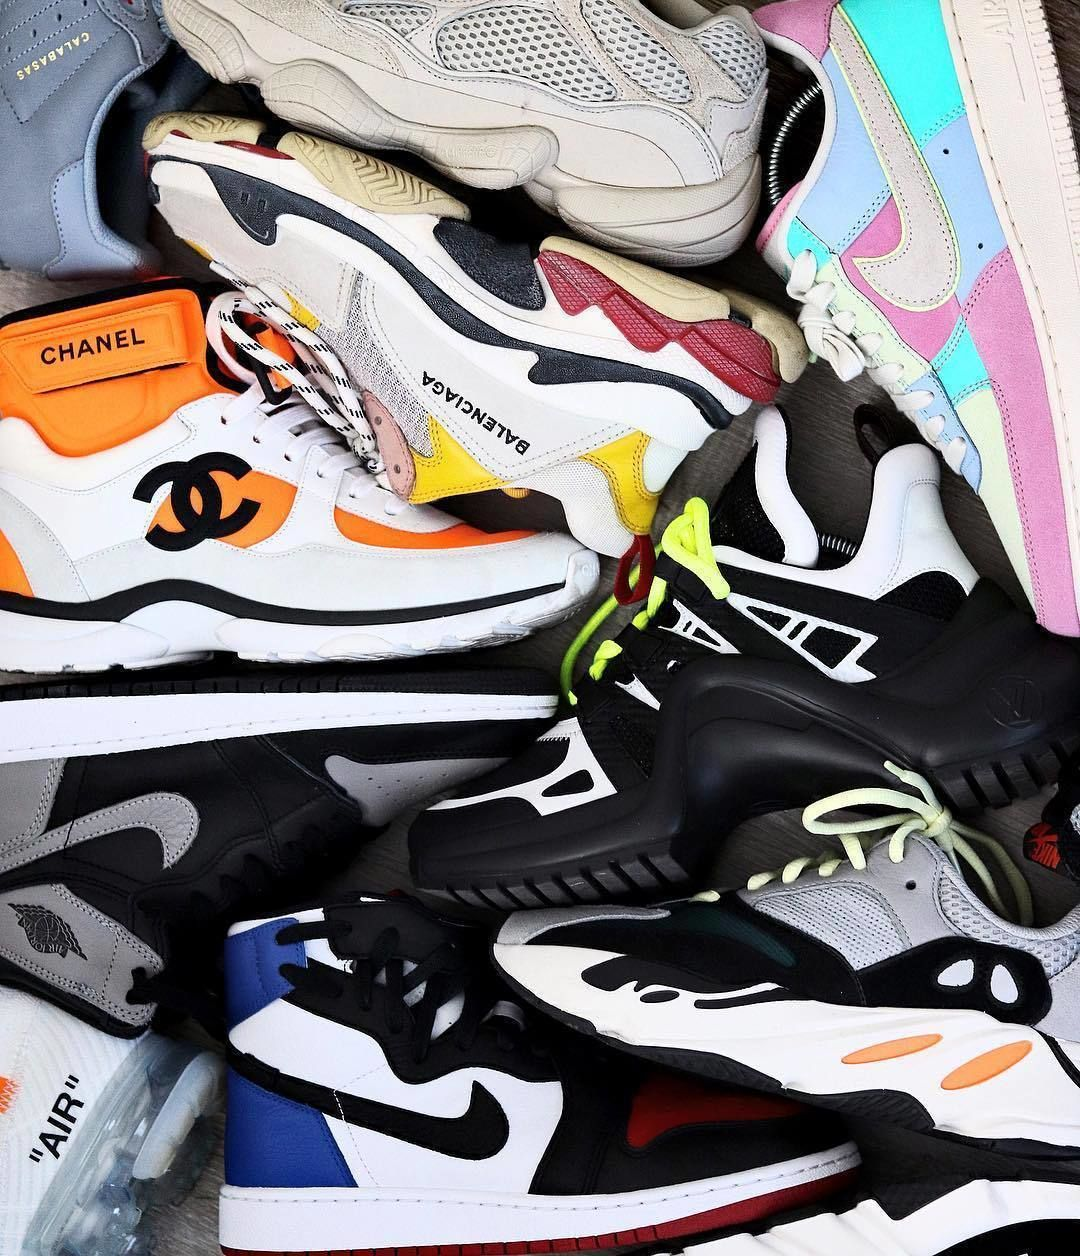 Pick your dream sneaker from this bunch